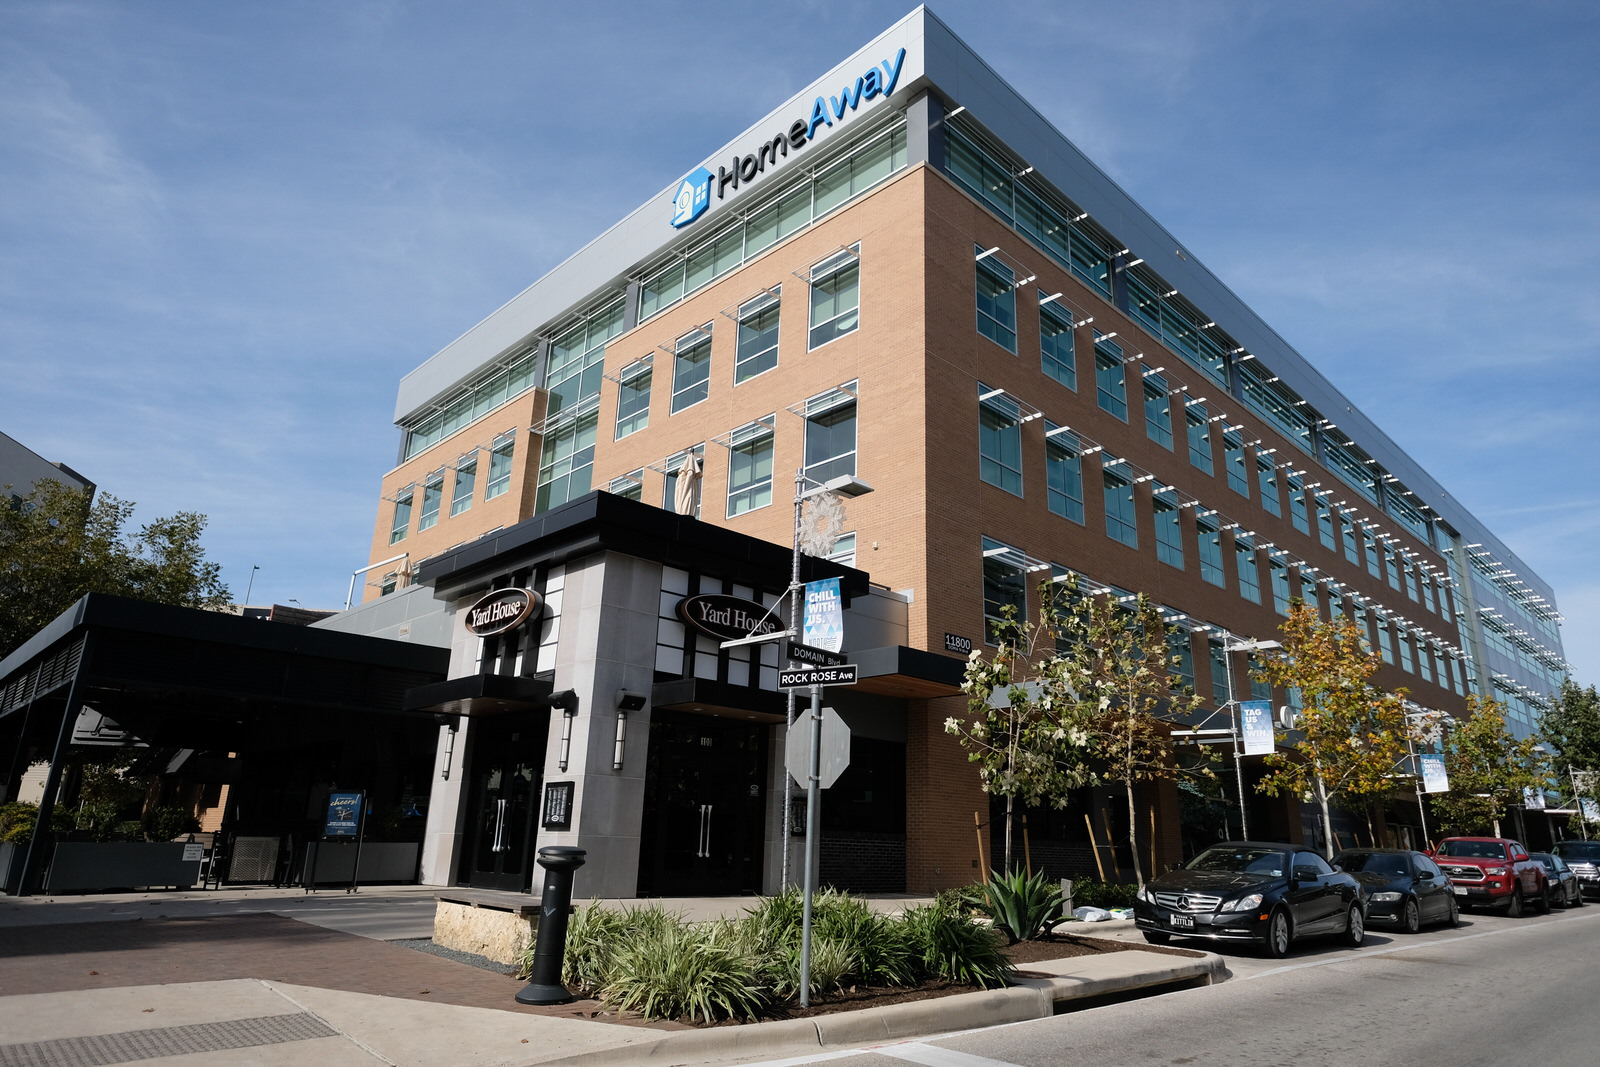 HomeAway's corporate headquarters in Austin, Texas.